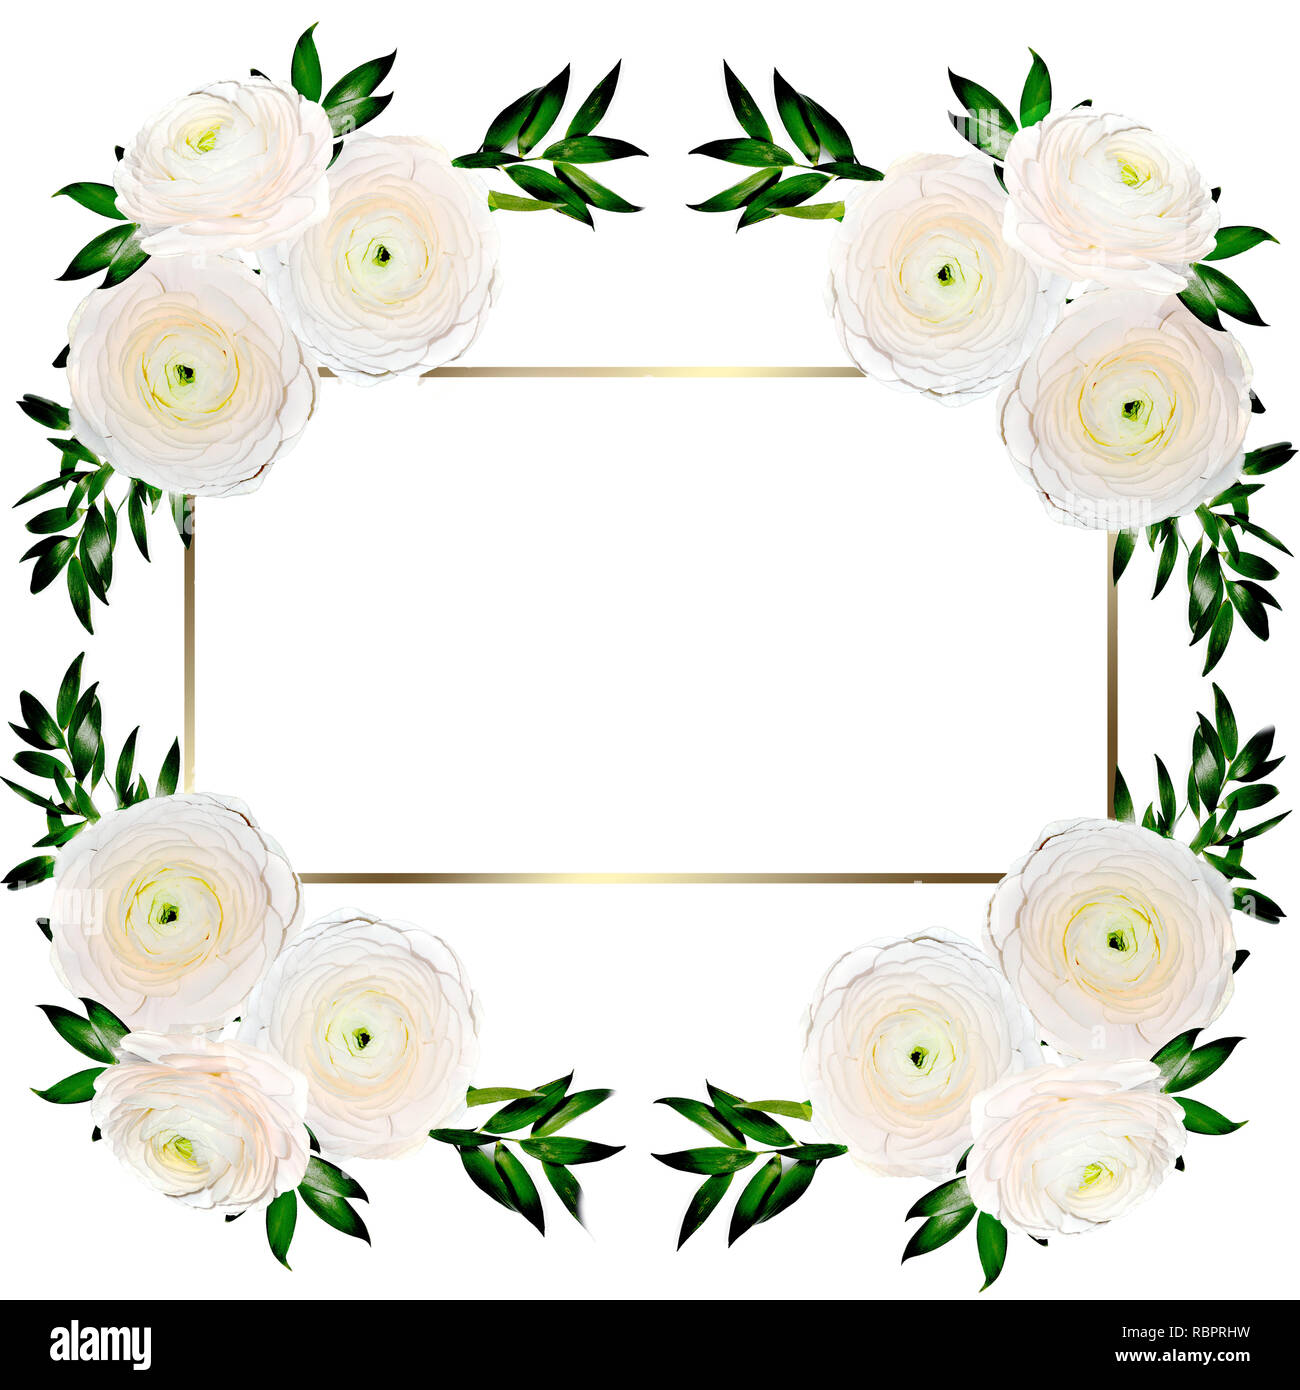 https www alamy com delicate floral frame with creamy colored ranunculus flowers isolated on white design for wedding invitation or greeting card to birthday or other ho image230997477 html